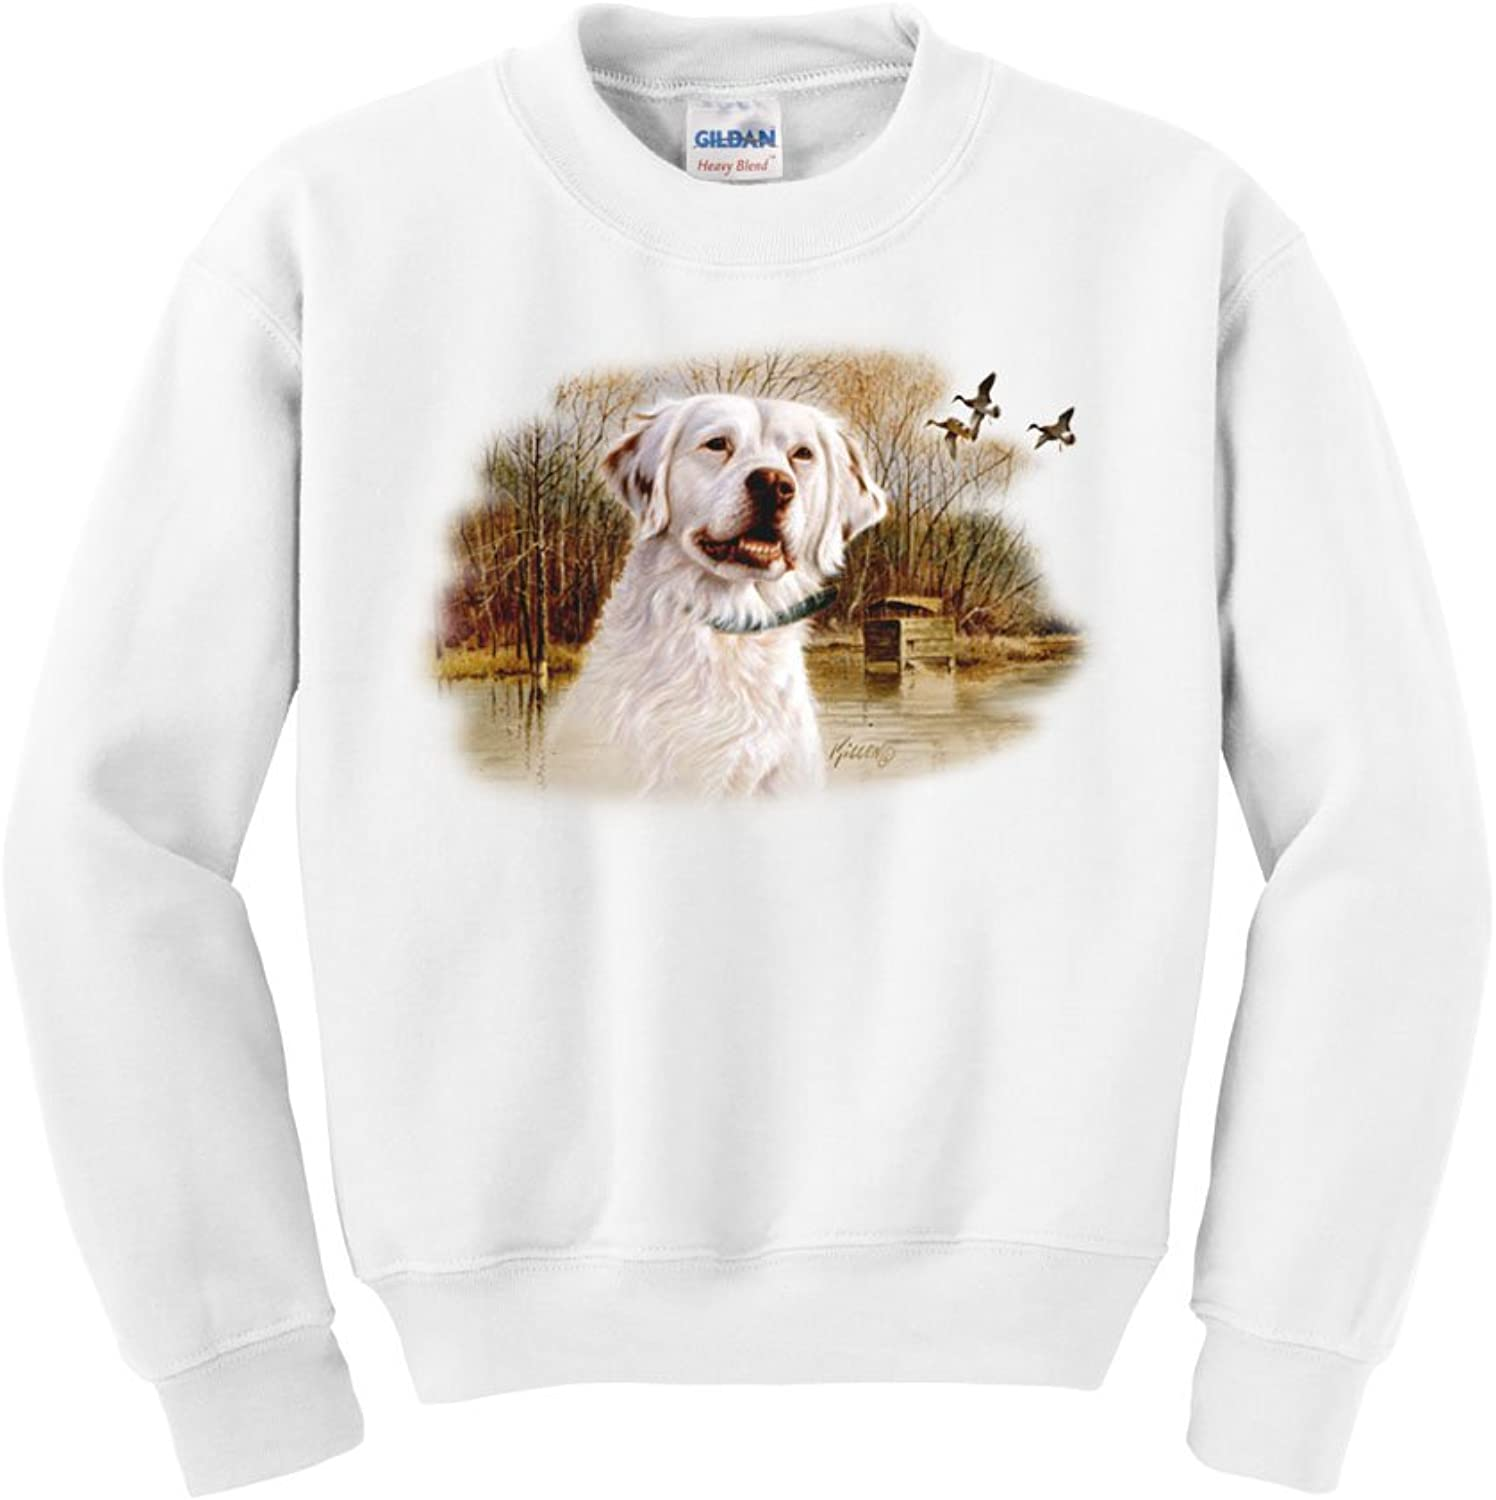 3219135bec801 Express Yourself King - English Setter Crew Neck Sweatshirt Sweatshirt  Sweatshirt - Mens Sizing cec6cd